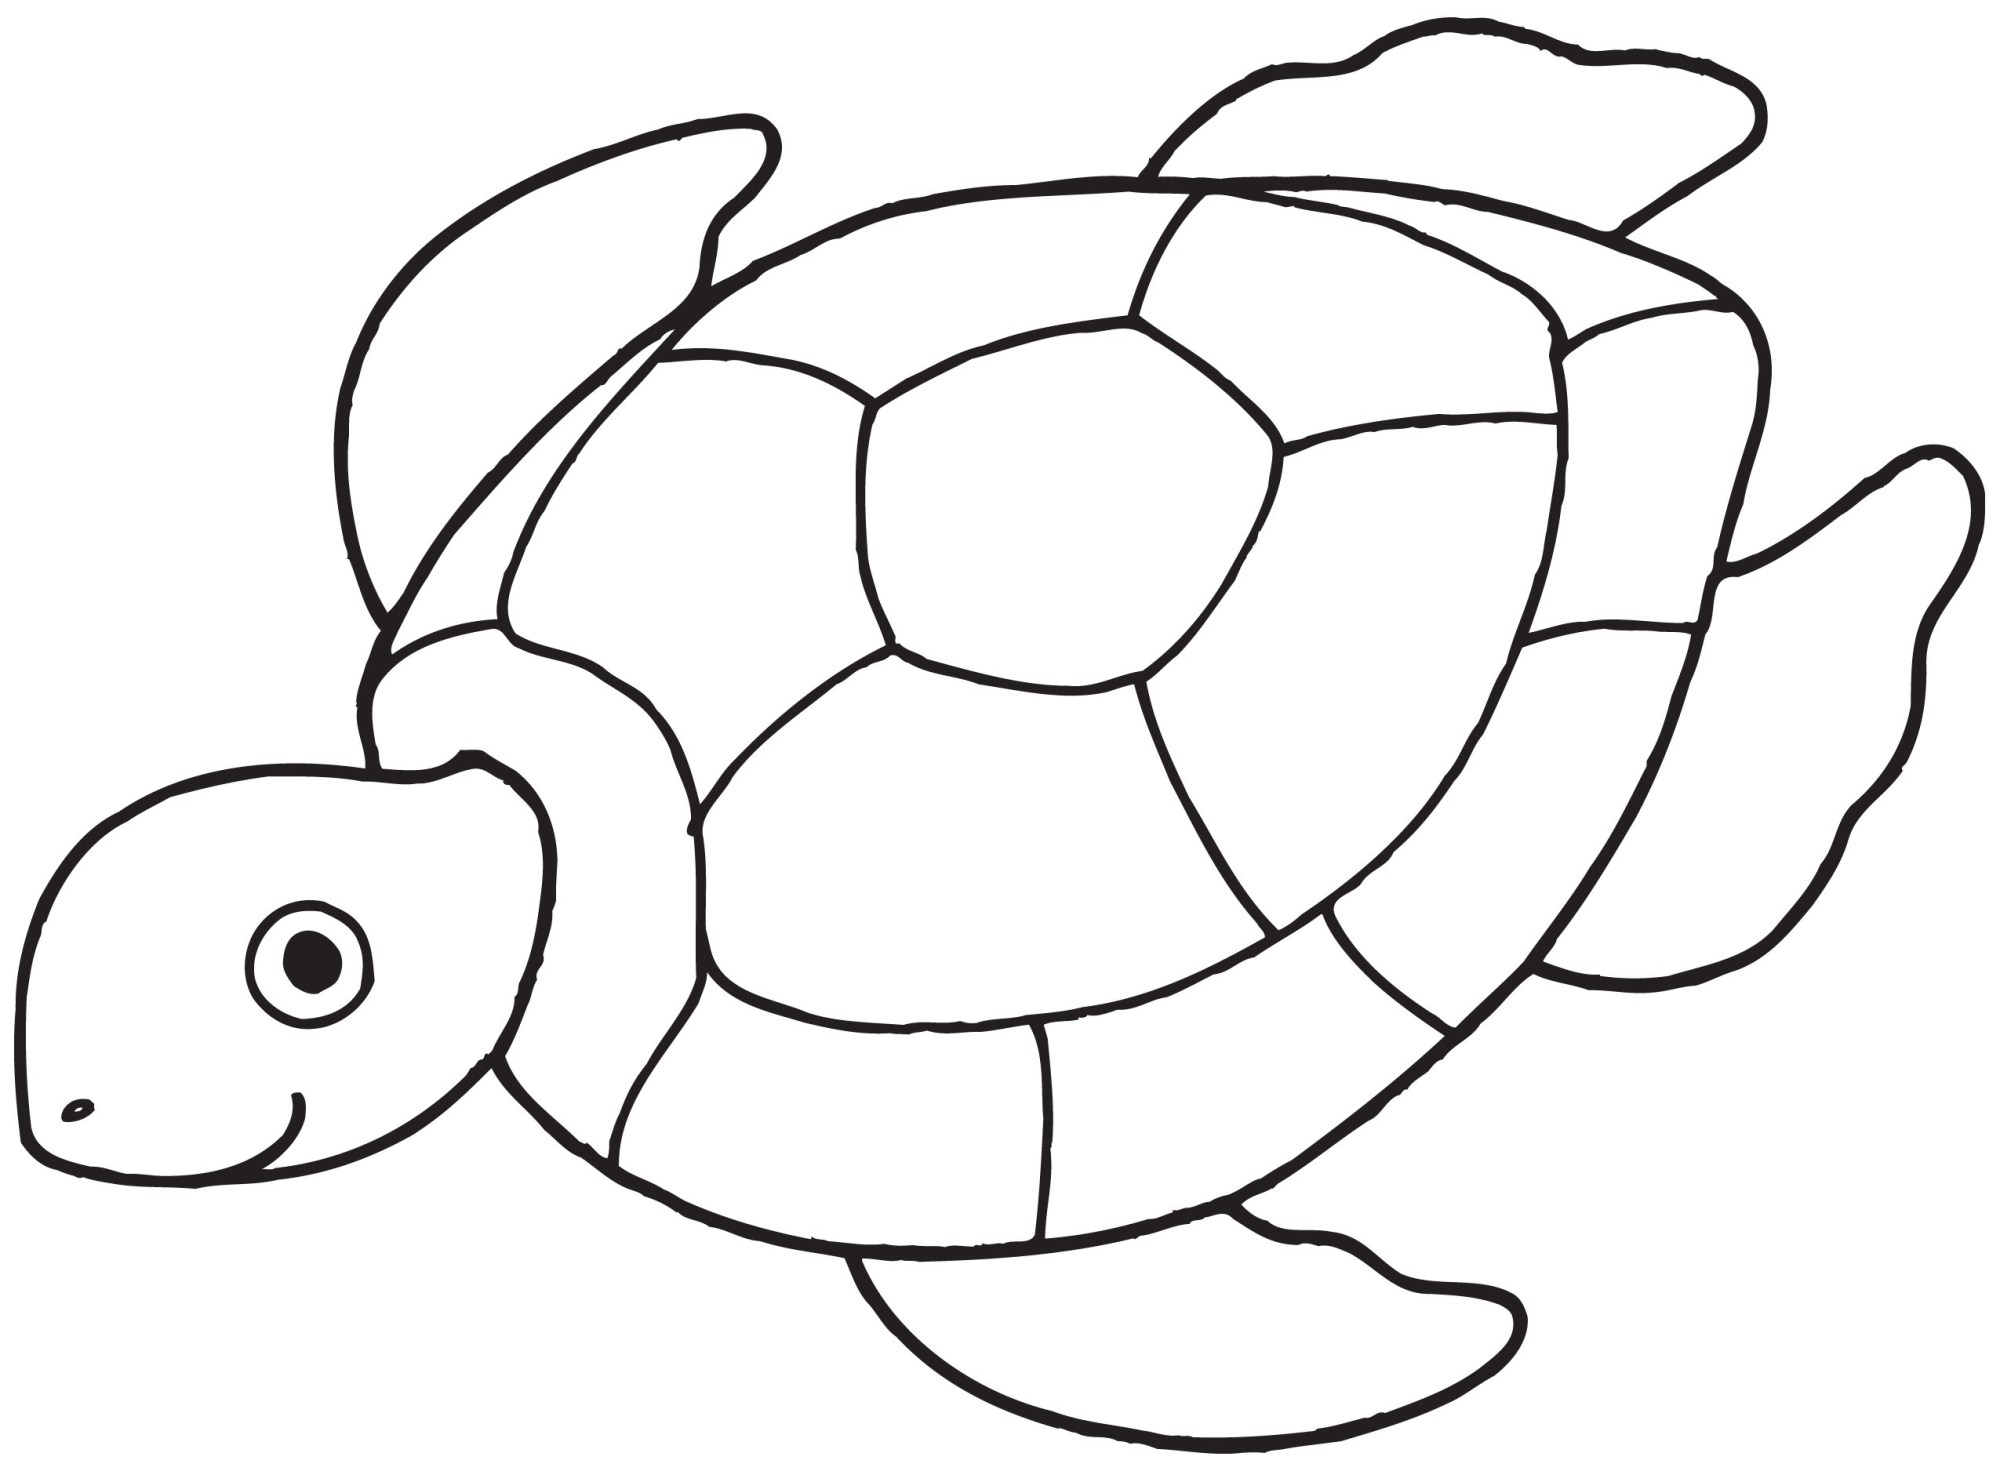 hight resolution of turtle clip art clipart library free clipart images